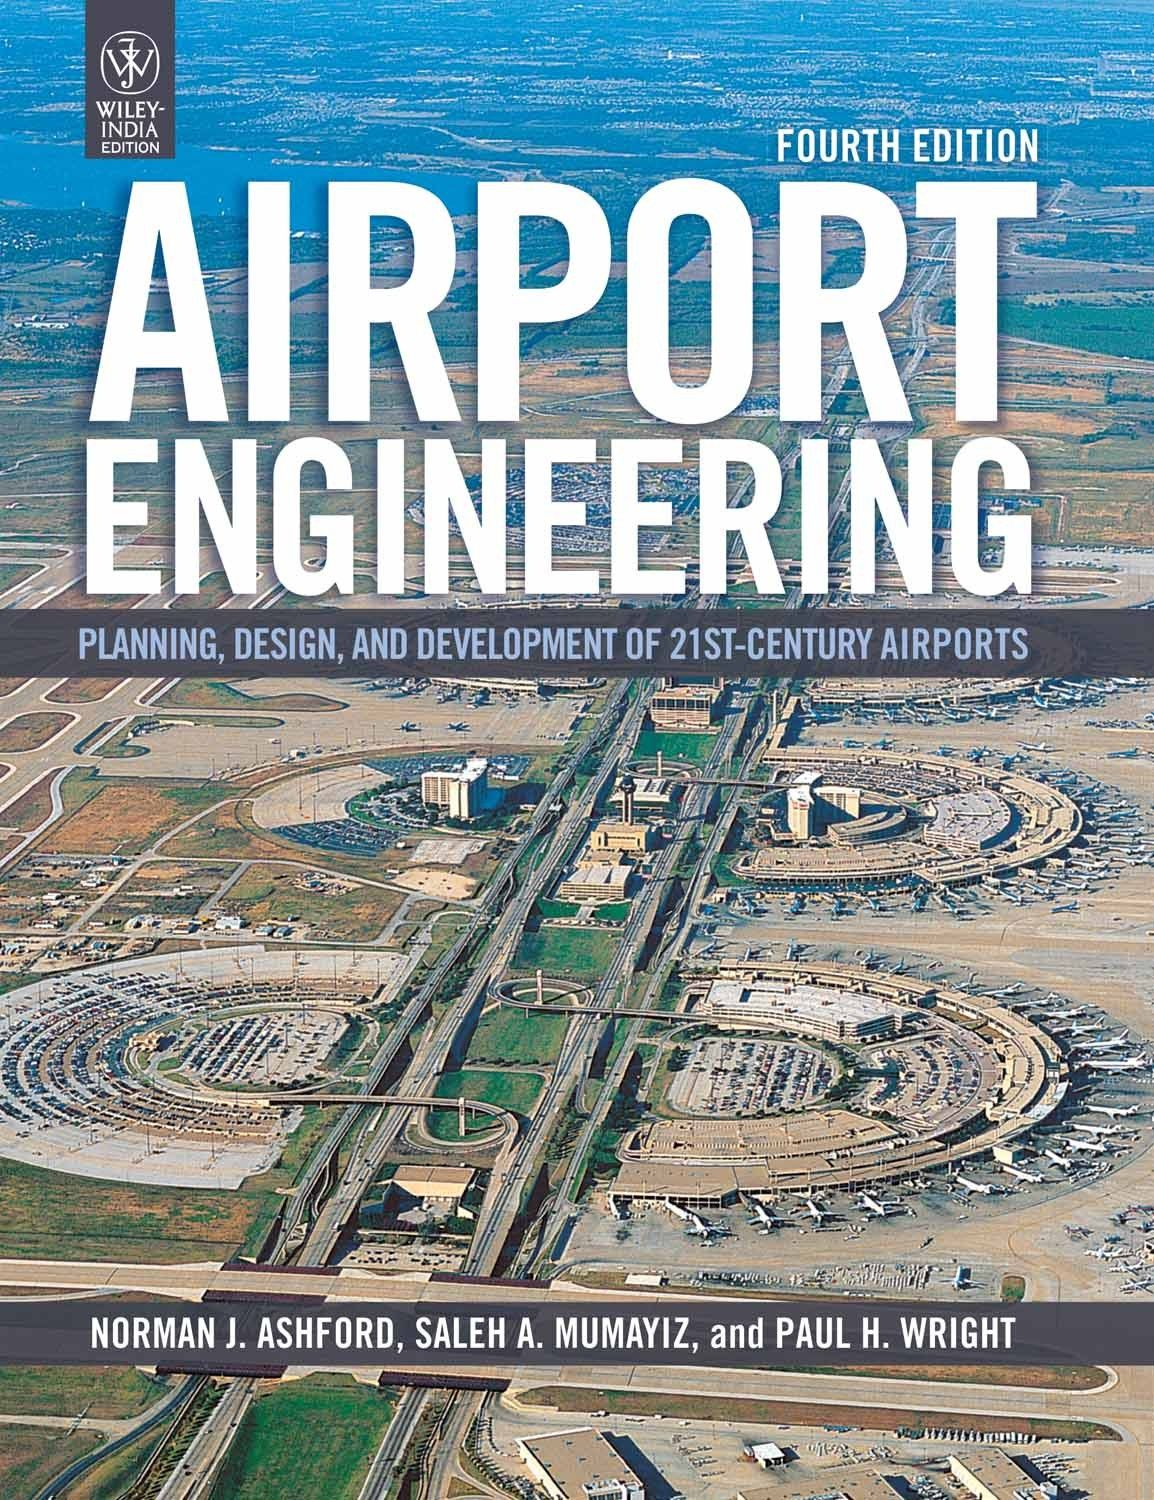 Airport Engineering Airport Runways Taxiways And Aprons Pinterest Airplanes And